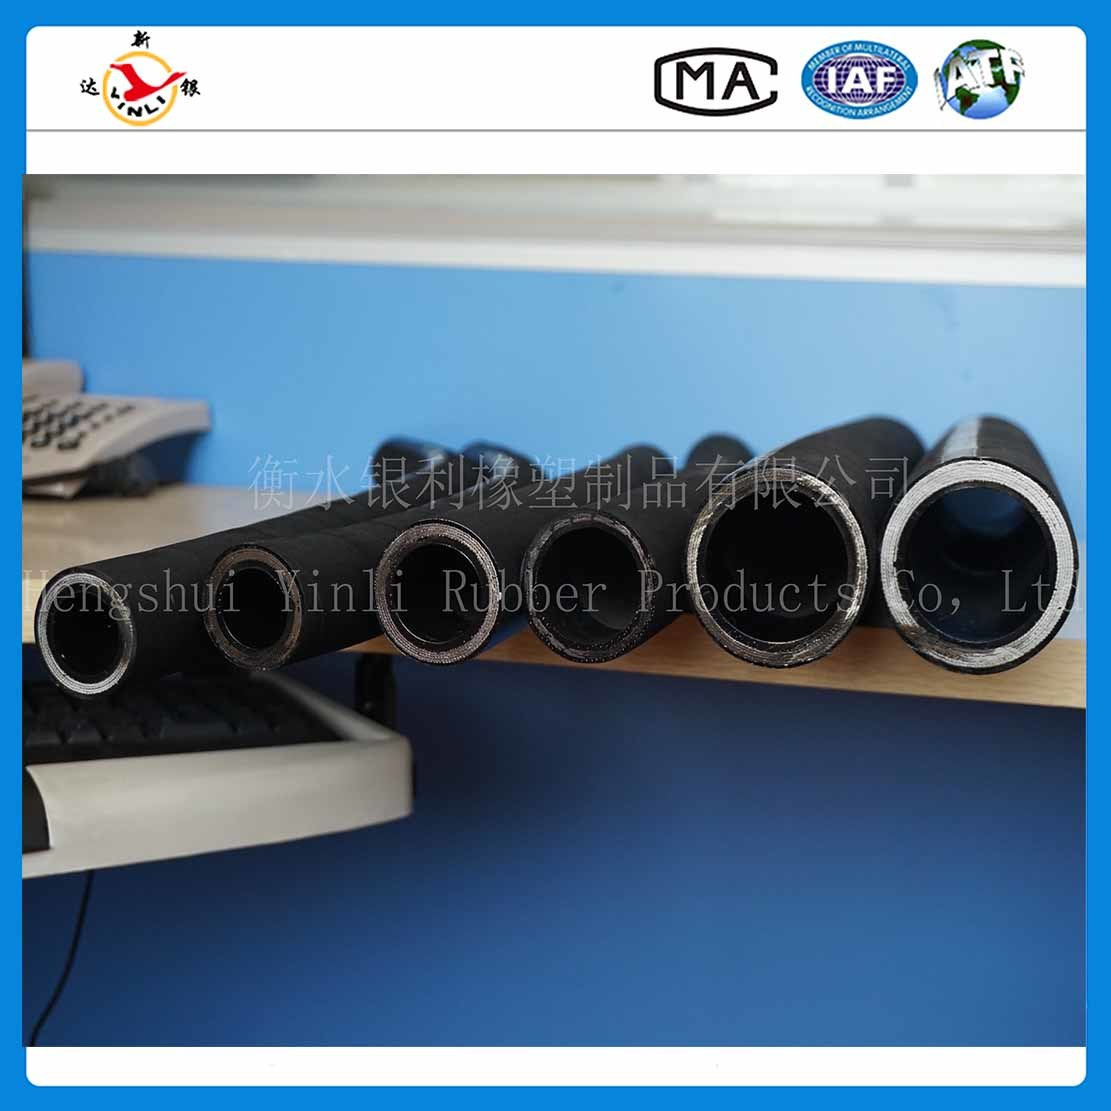 China High Pressure One Steel Wire Braided Hydraulic Rubber Fuel ...